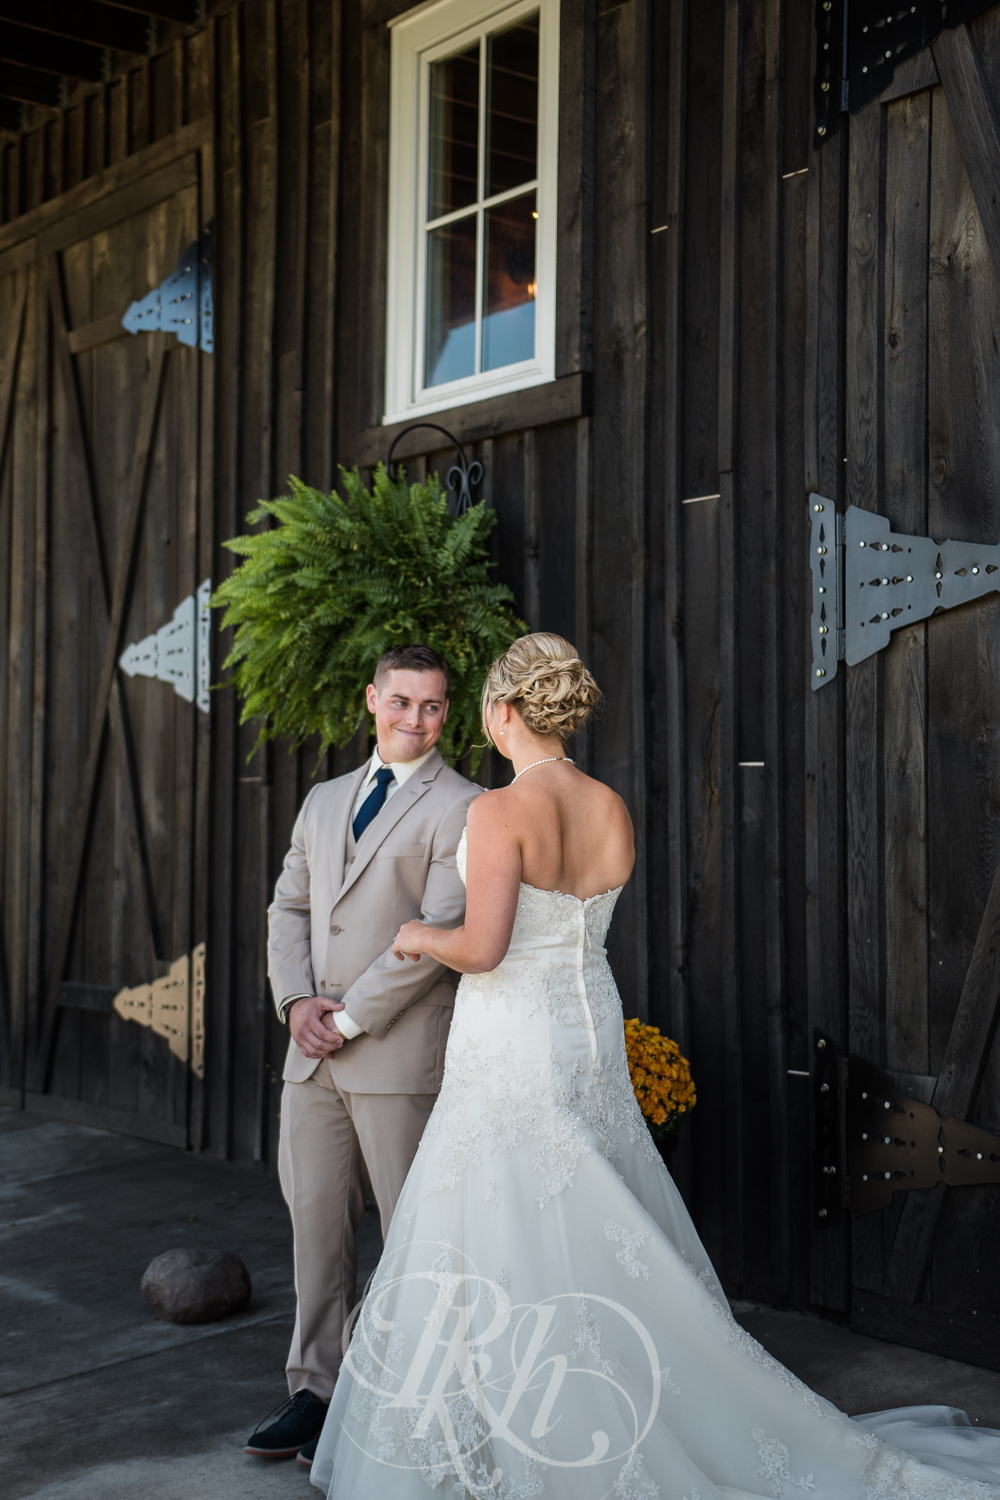 Abby & Sean - Minnesota Wedding Photographer - Barn at Crocker's Creek - RKH Images - Blog -13.jpg